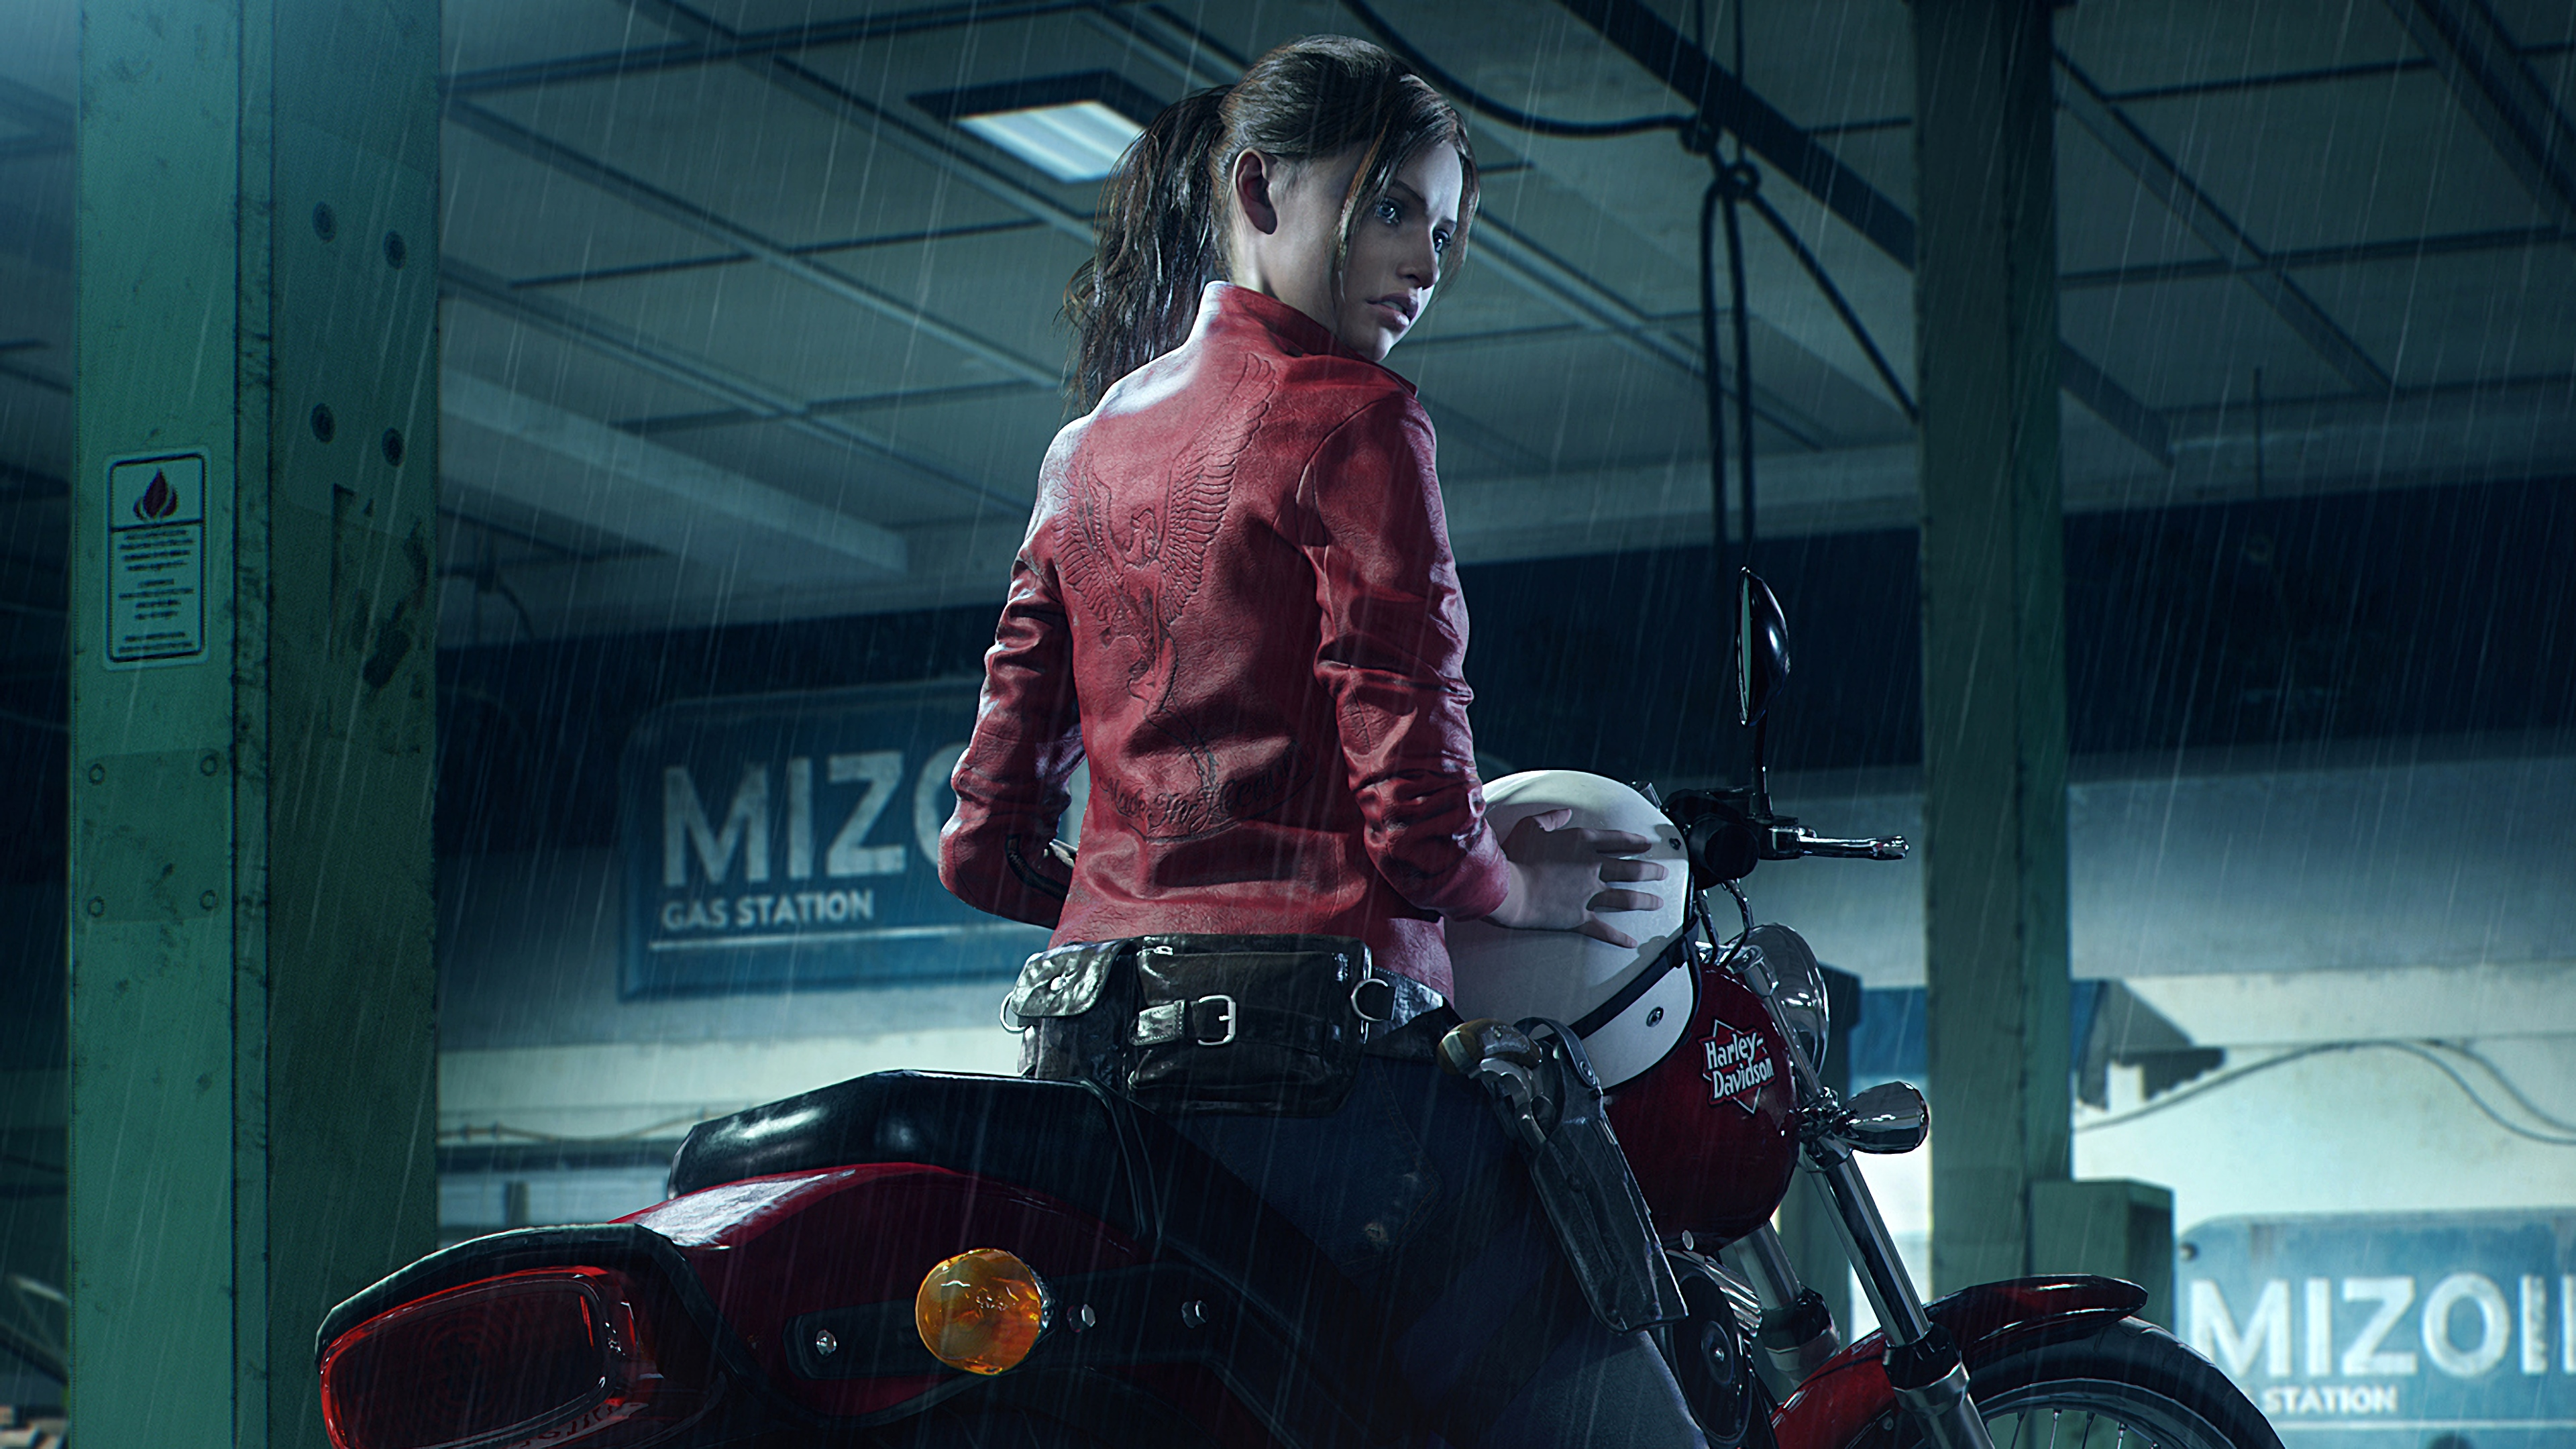 Resident Evil 2 2019 Claire Redfield Harley Davidson Resident